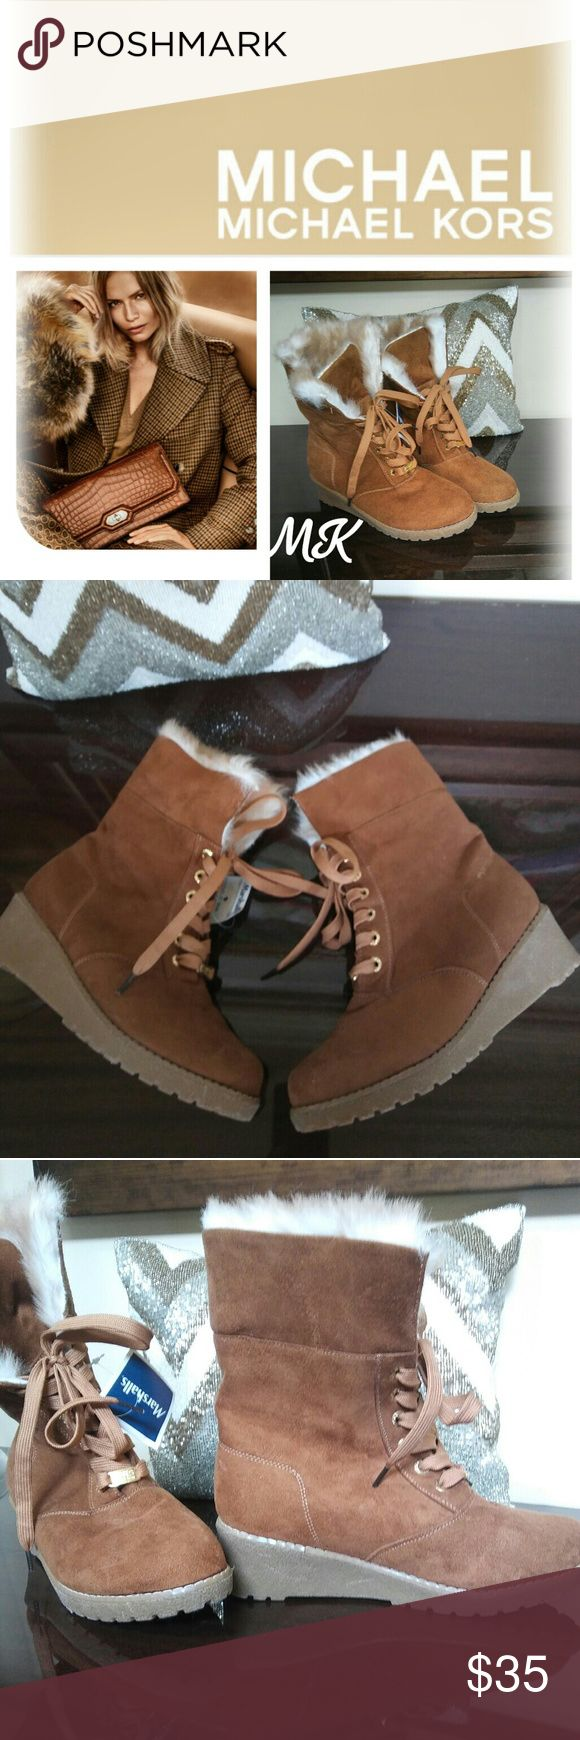 Price Drop authentic Michael Kors Boots w/ tags Suede MK Boots New w/ tags fits size 6 to 7 Michael Kors Collection Shoes